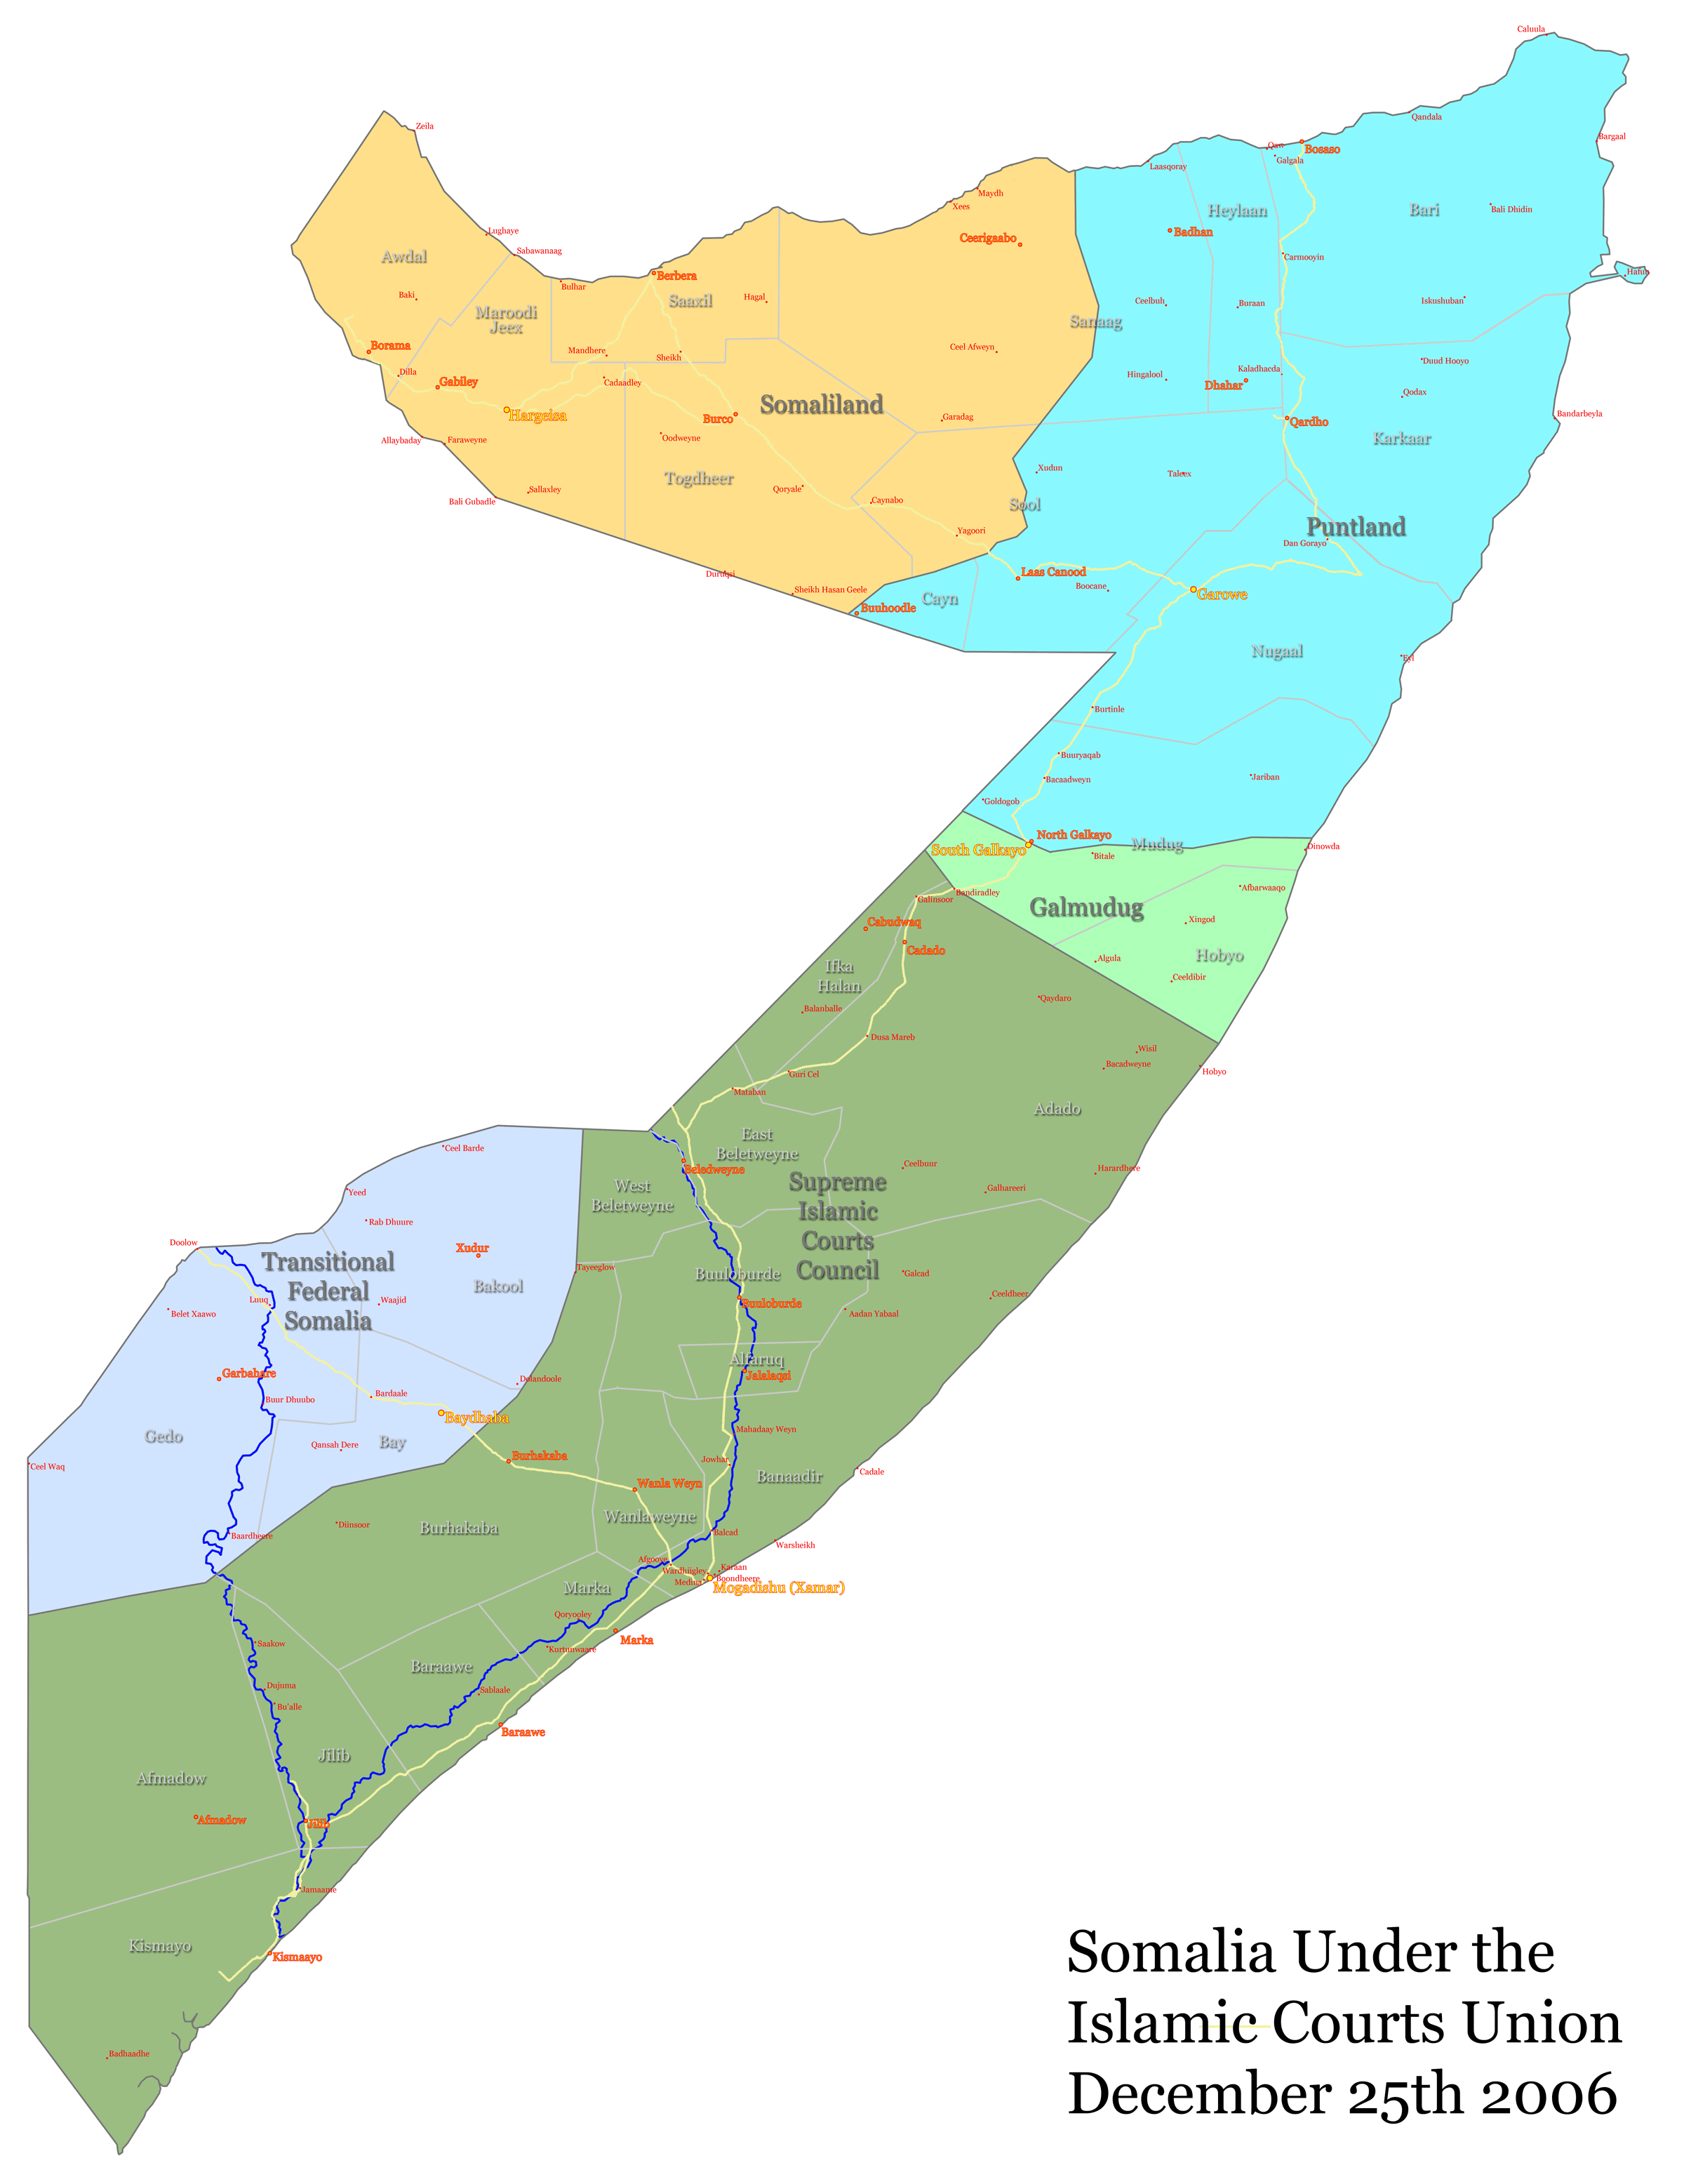 fileicu somalia mappng. fileicu somalia mappng  wikimedia commons